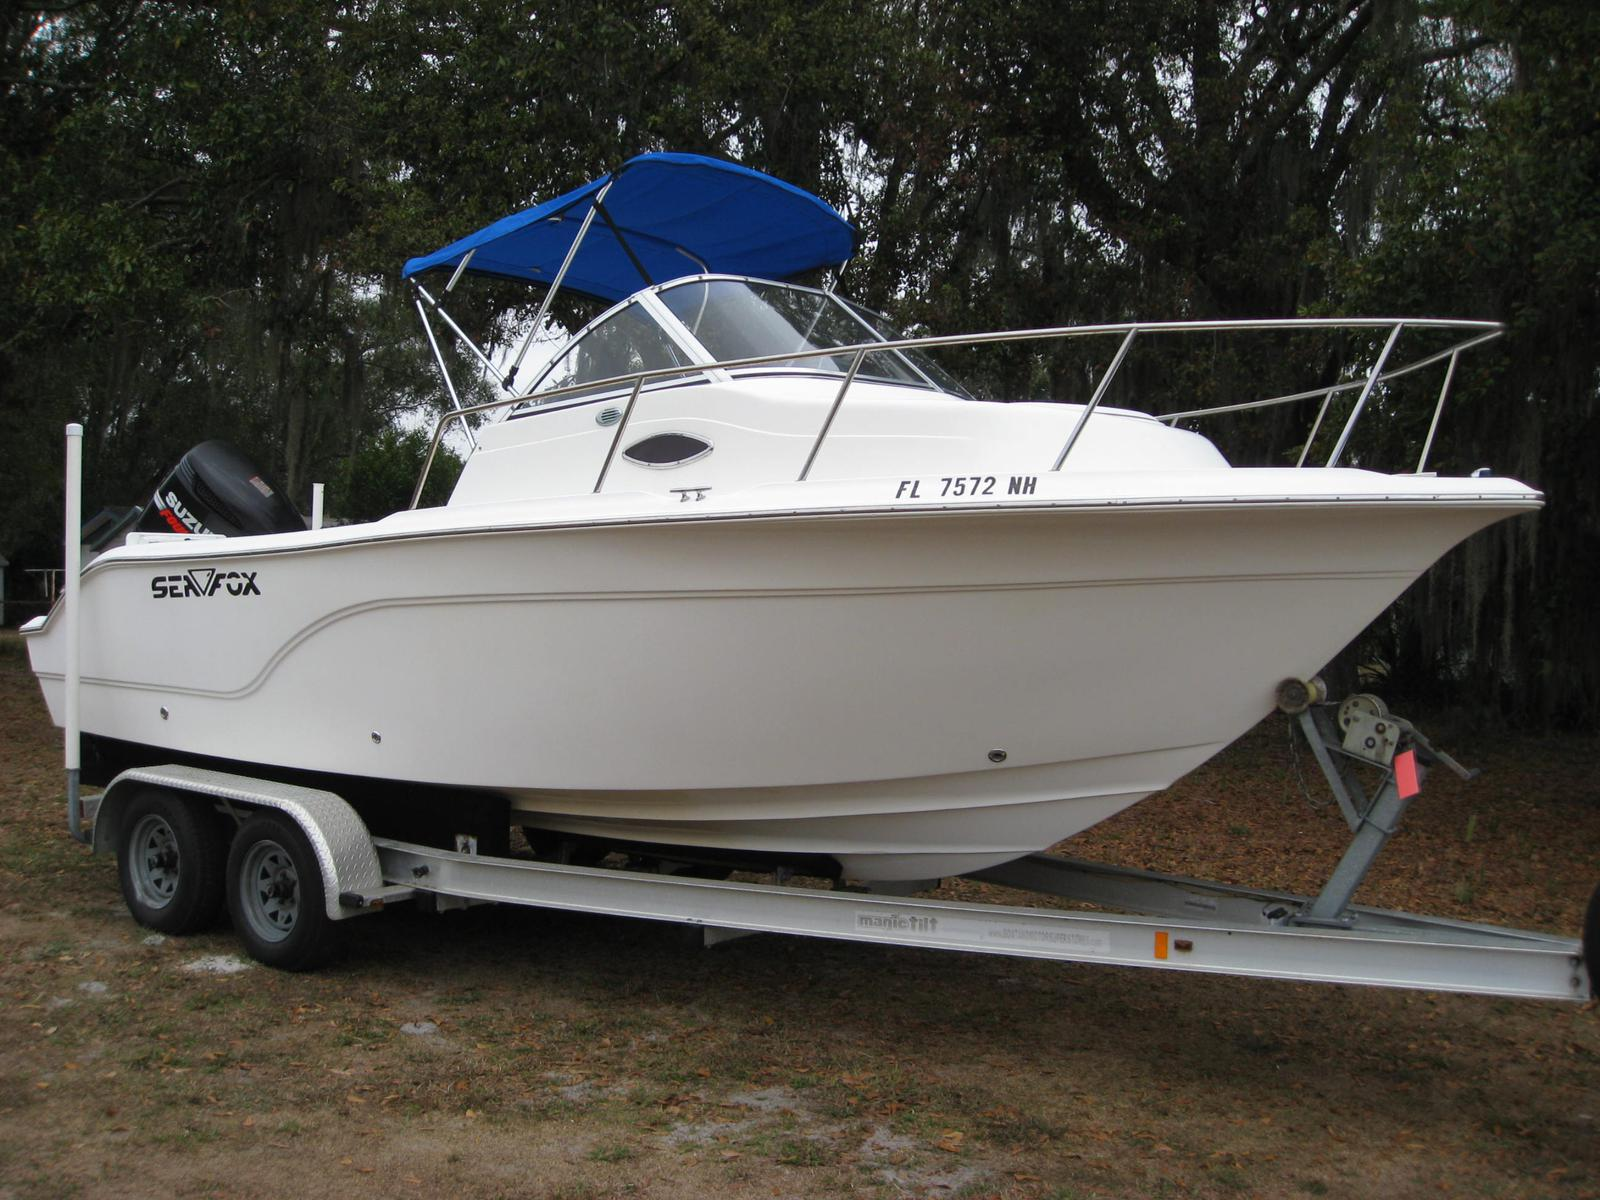 Land n sea craft new and used boats for sale for Fish and ski boats for sale craigslist